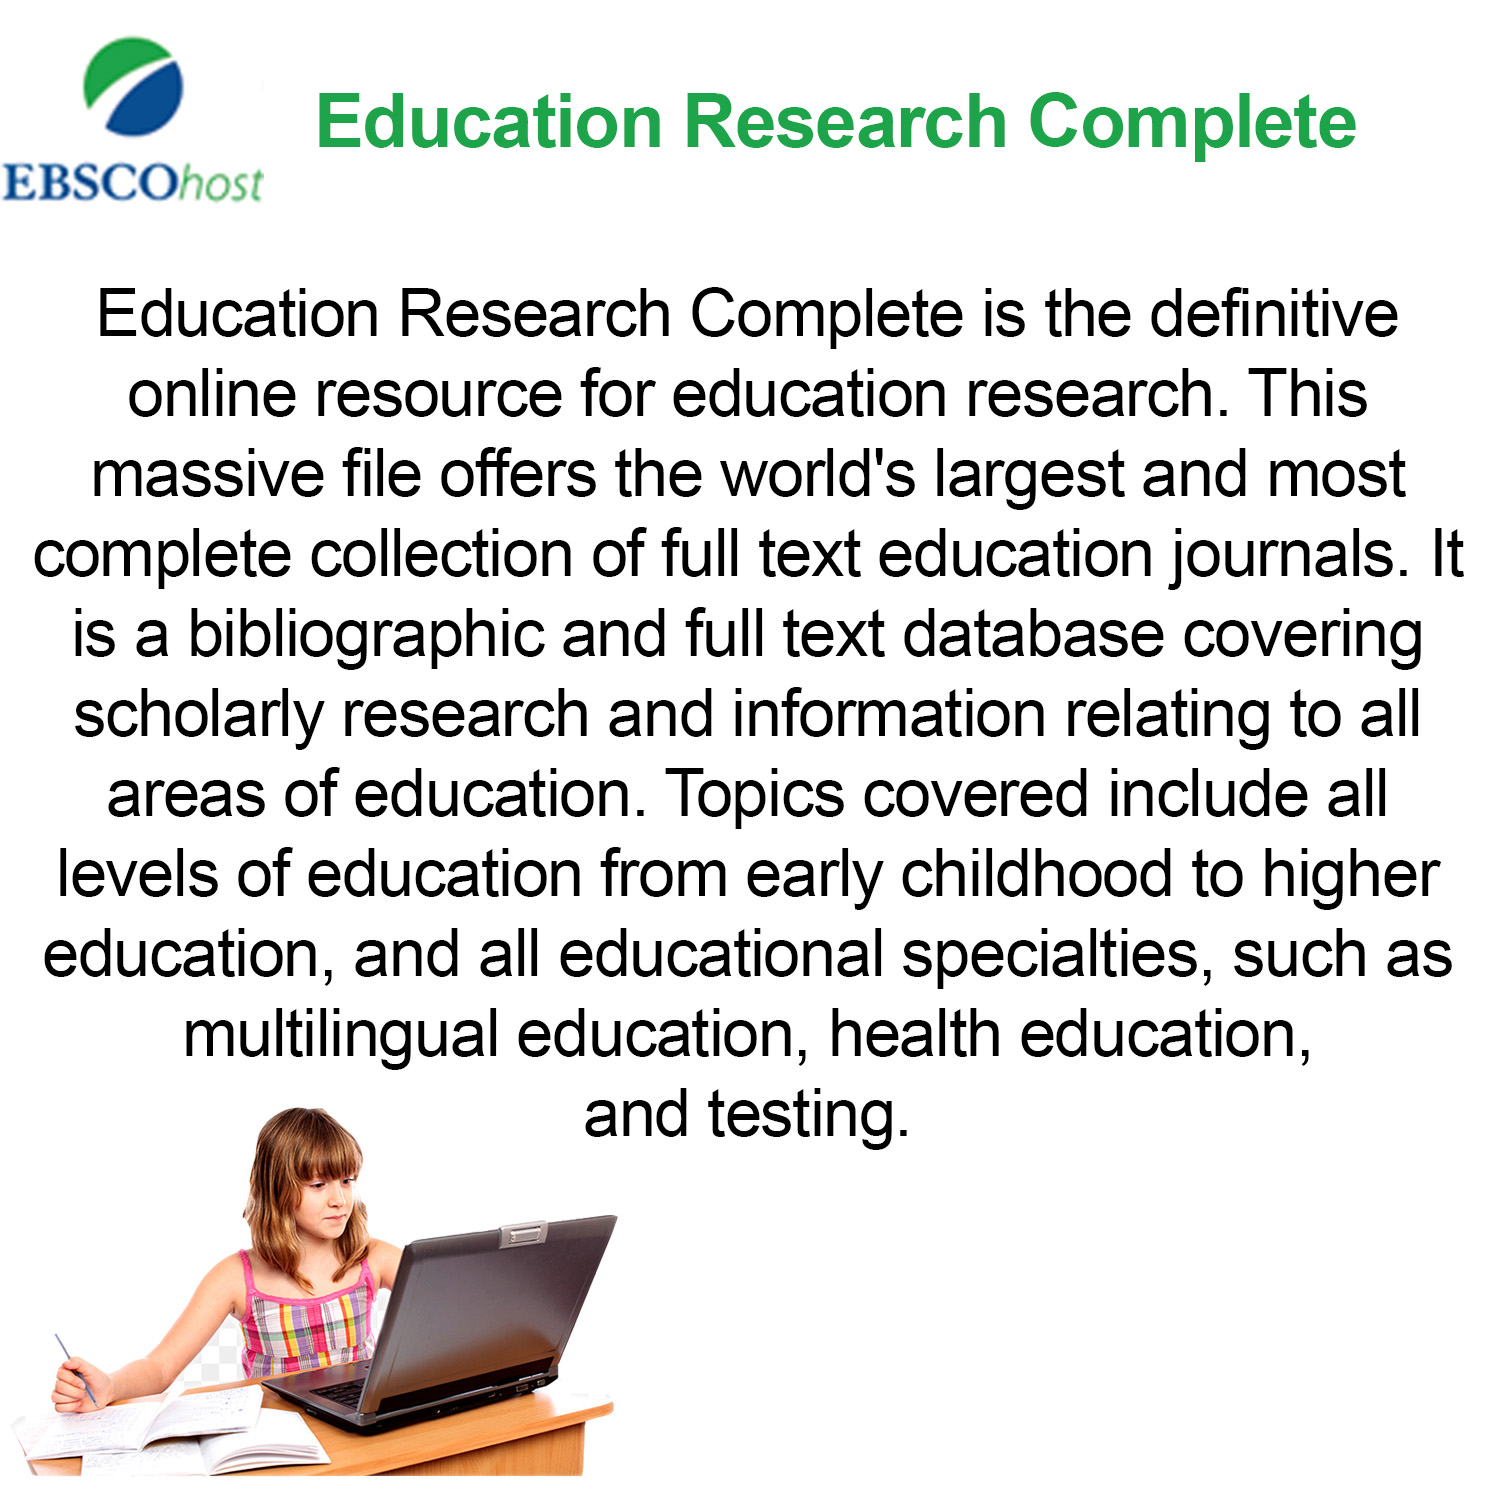 Small image with a synopsis of Ebsco education databasewith clickable link